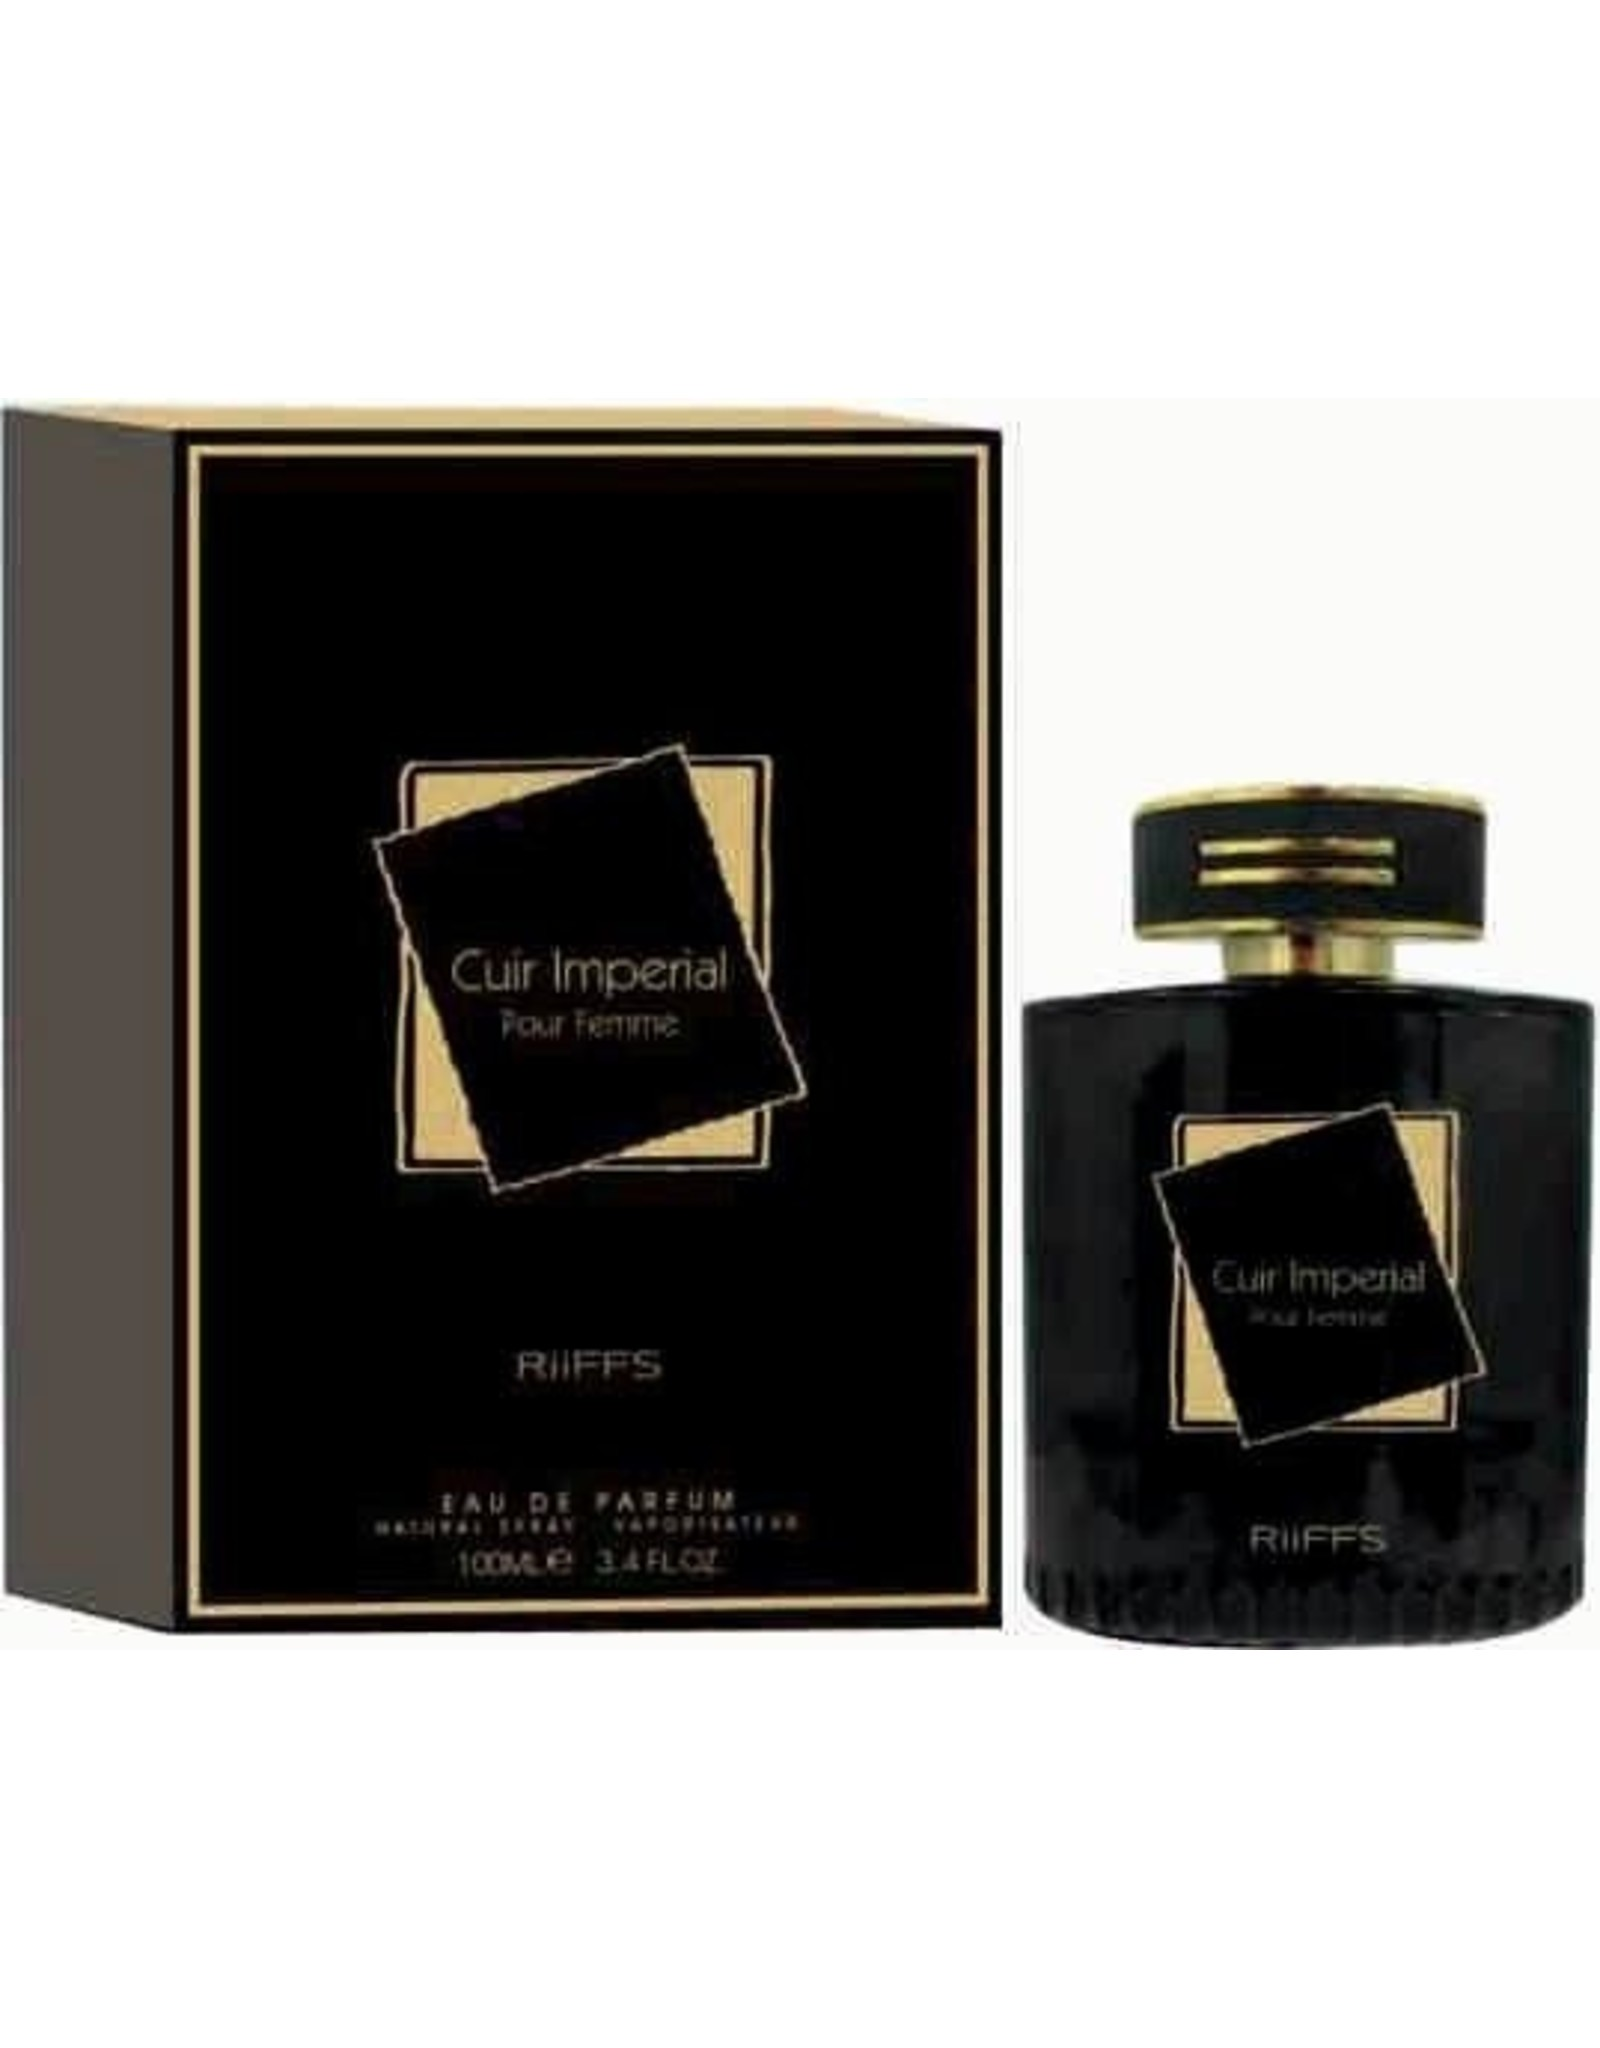 RIFFS Cuir Imperial EDP 100 ml